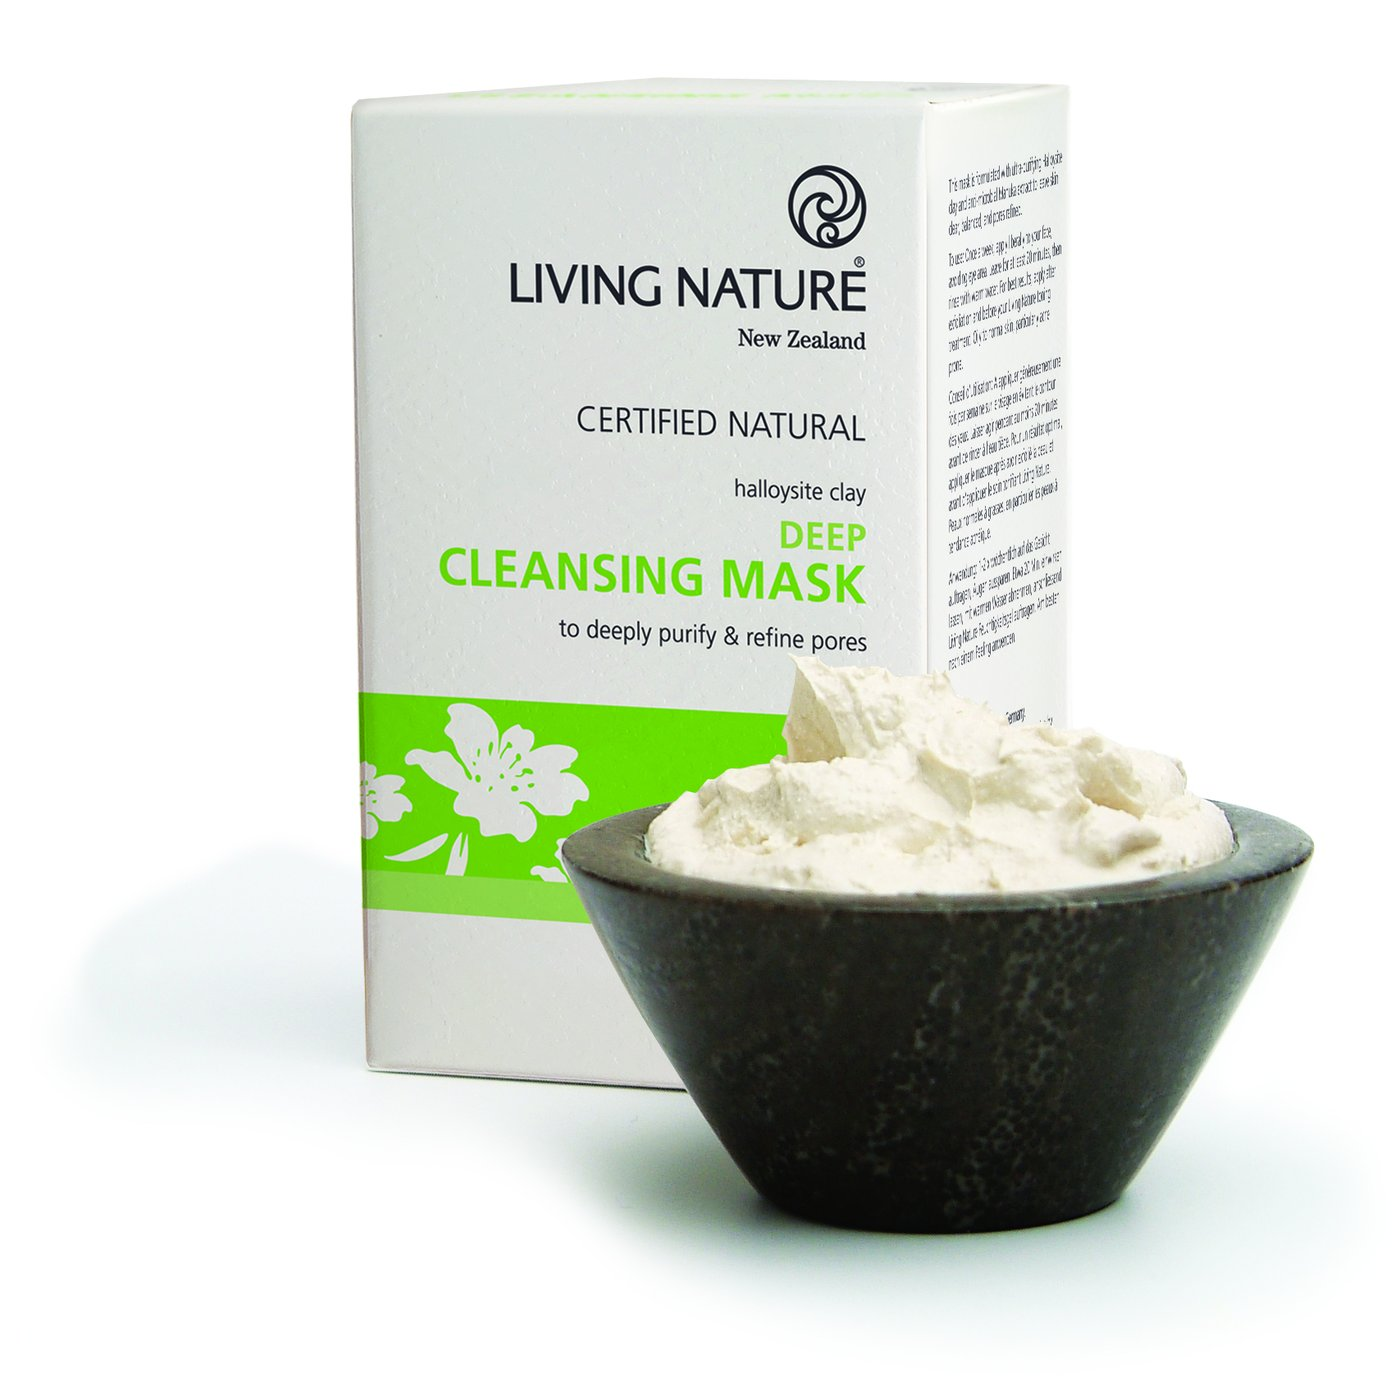 Mặt nạ đất sét Living Nature Deep Cleansing Mask 8